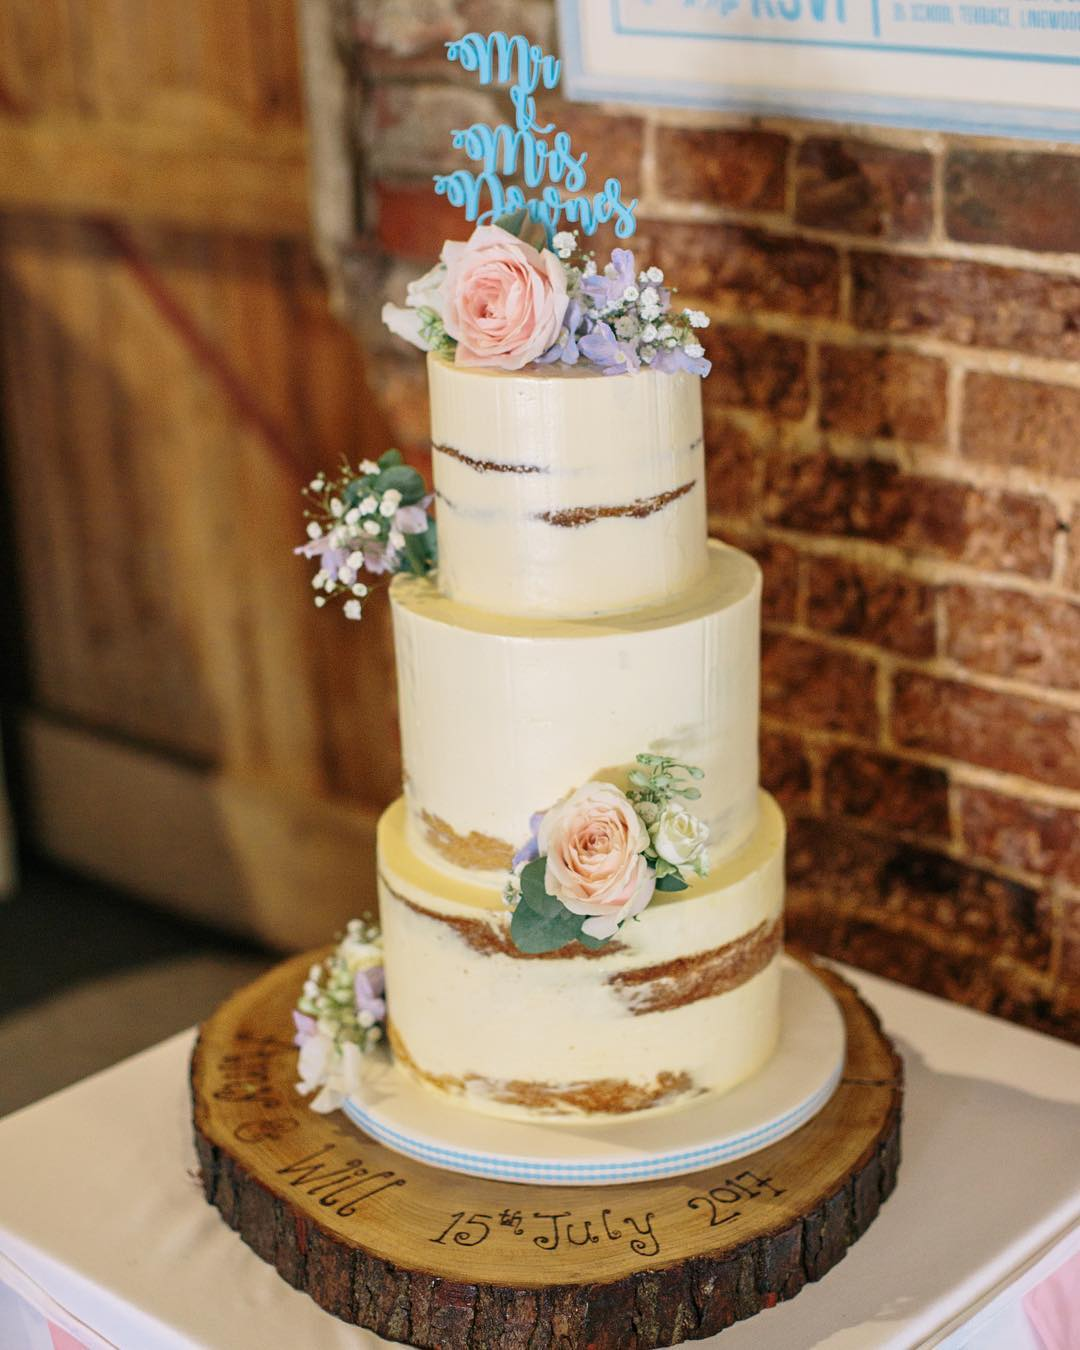 Semi Naked Cake Choosing Your Wedding Cake Guest Blog Post Ellies Cakery Wymondham Vintage Partyware Wedding Decoration Prop Hire Norfolk